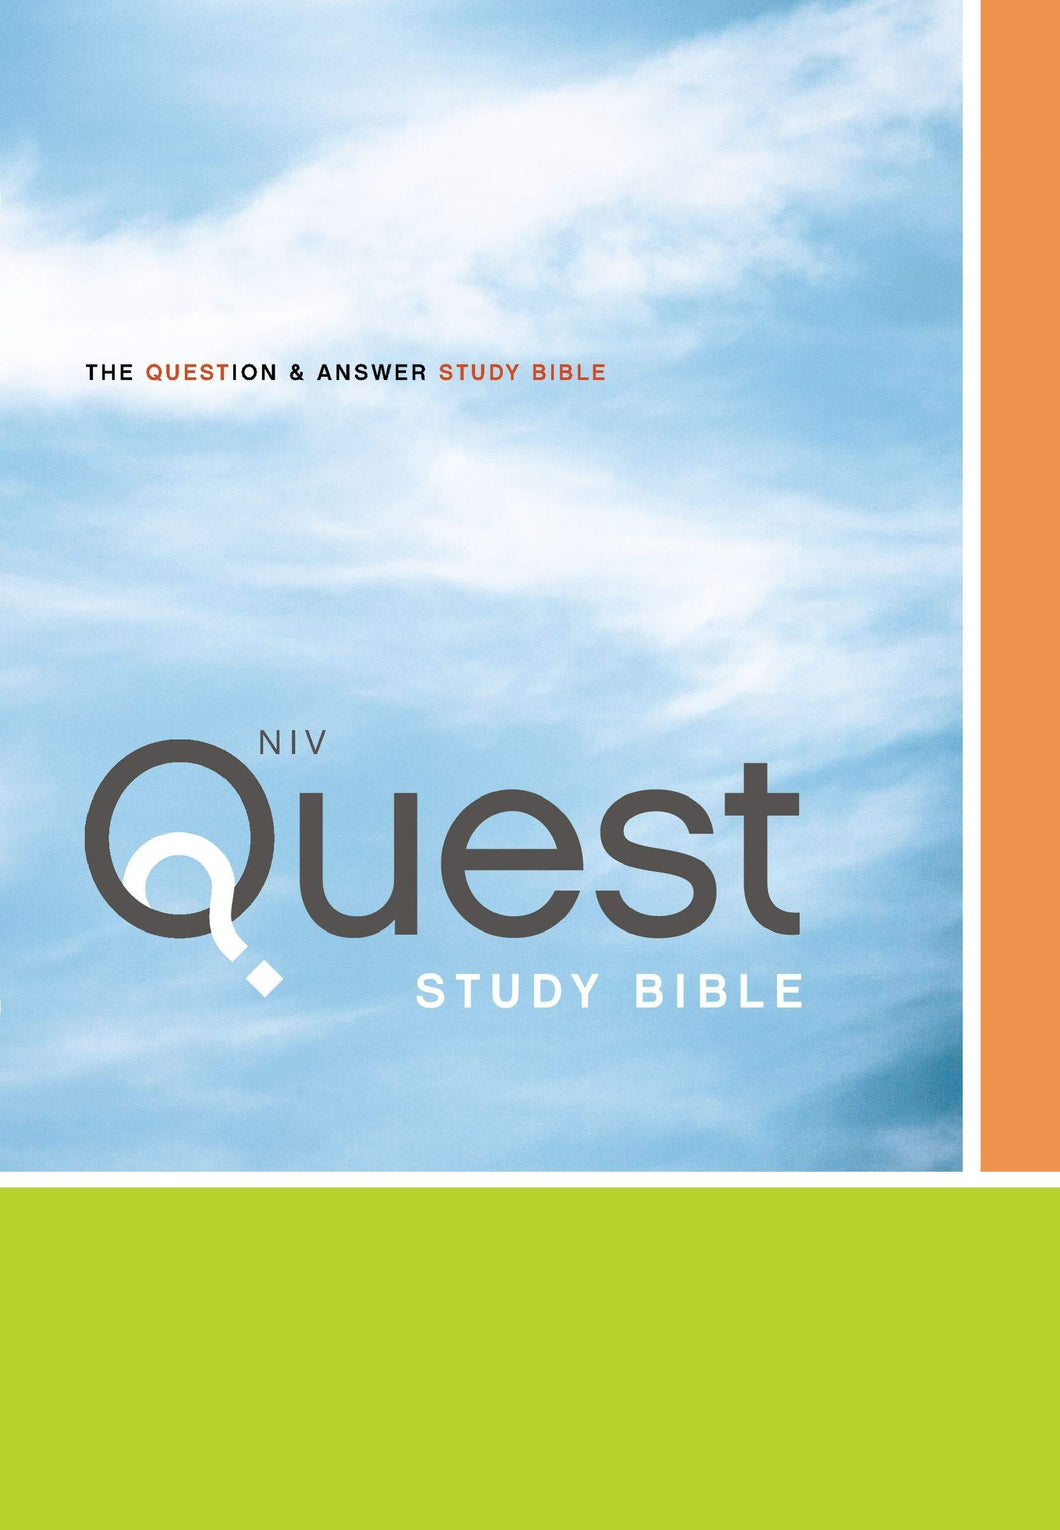 NIV Quest Study bible (HB)